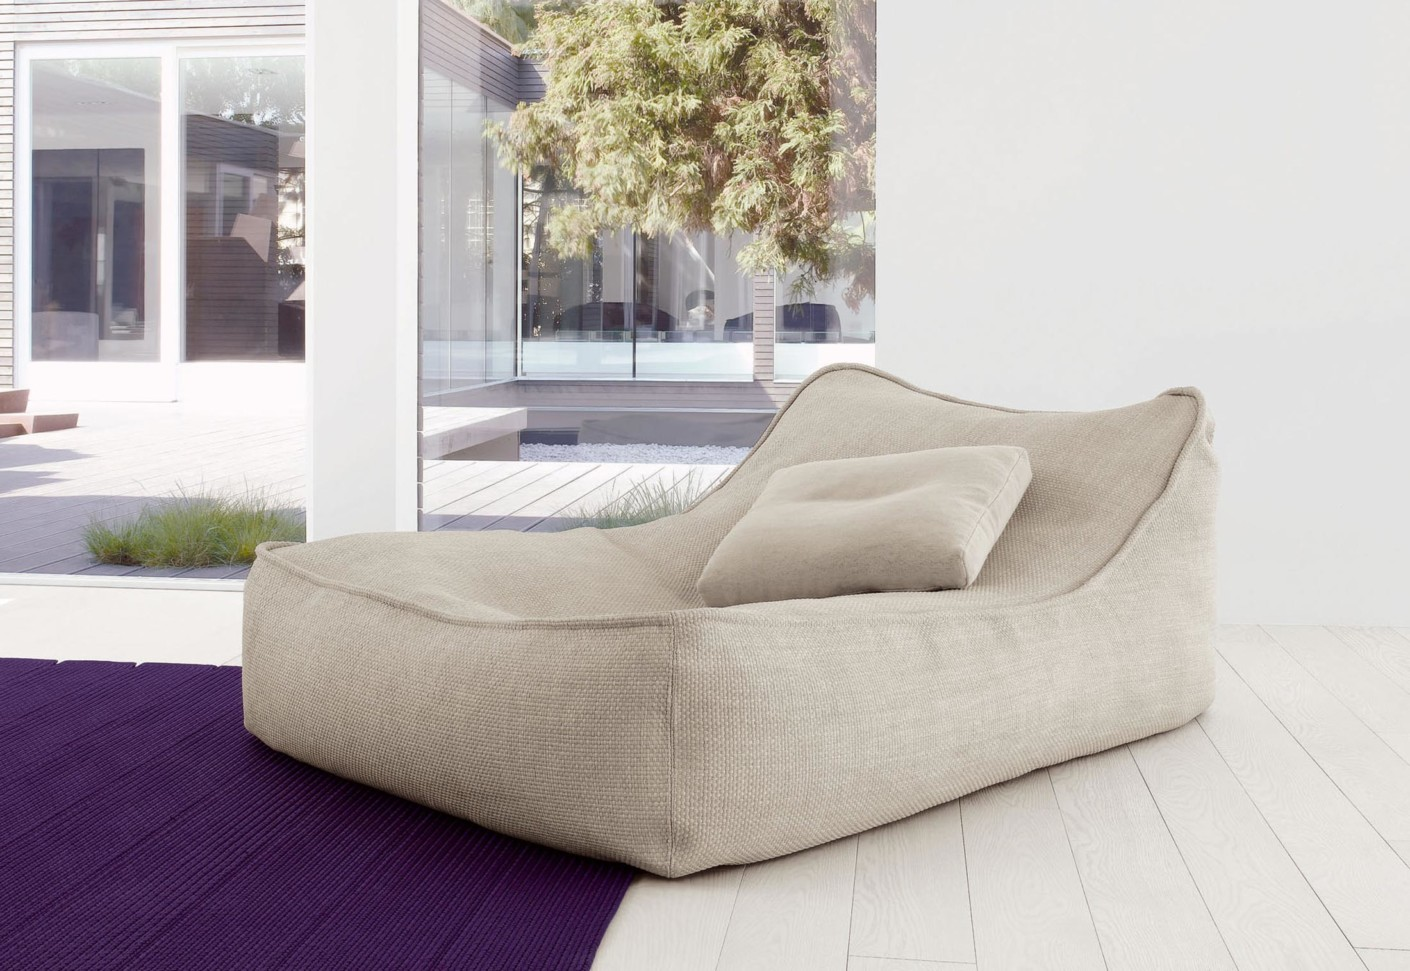 Float Chaiselongues By Paola Lenti Stylepark